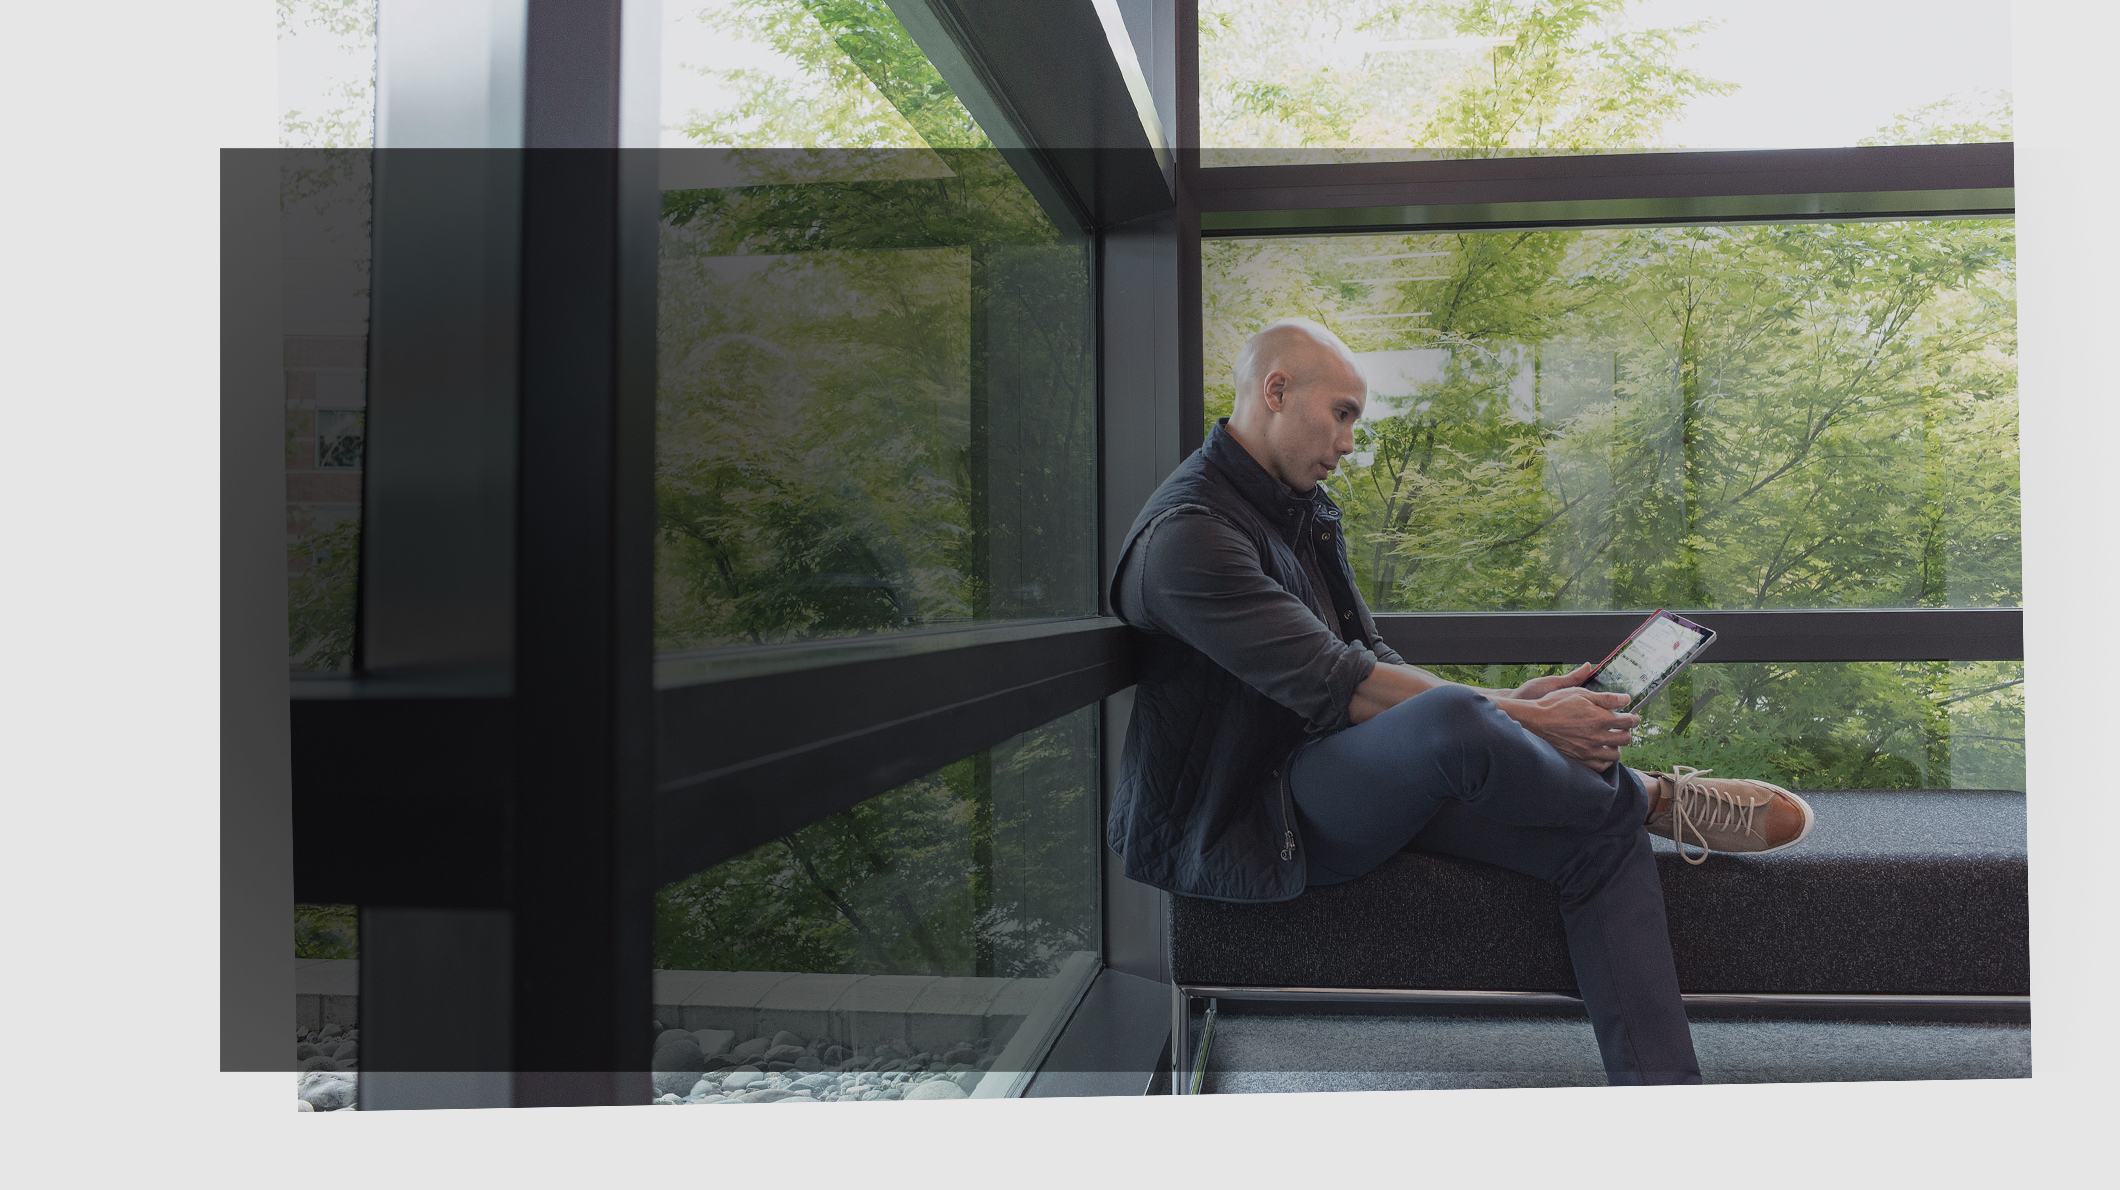 A man sits on a bench and looks at a device in his hands